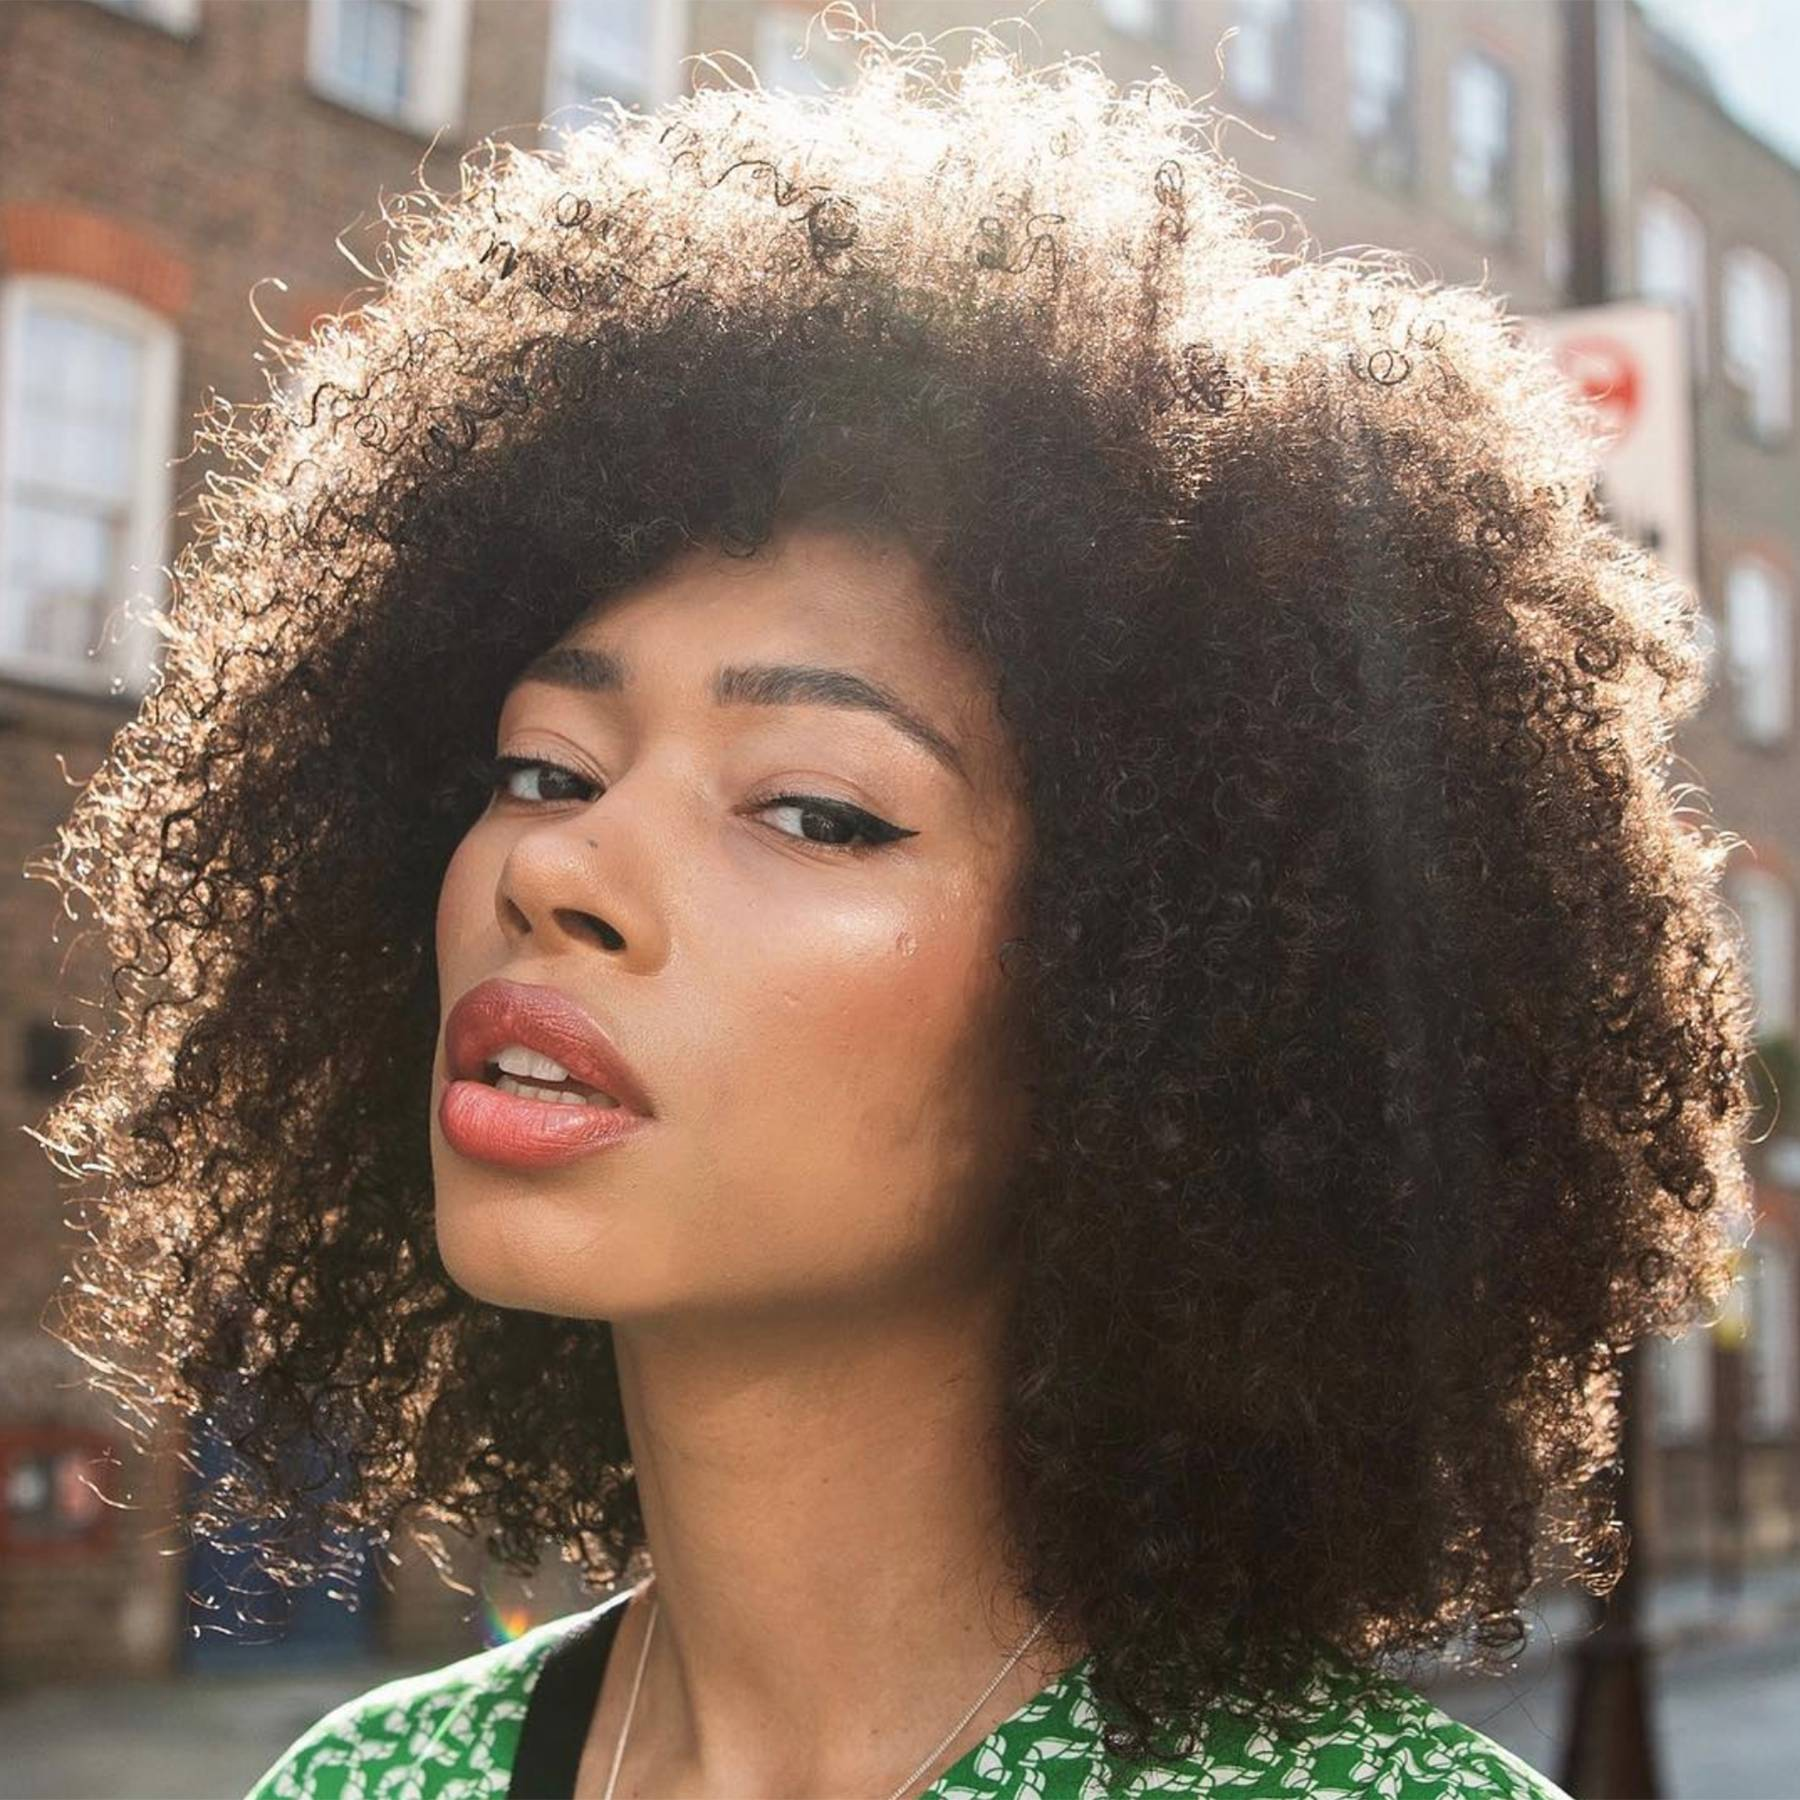 4 Black Women Share Their Very Different Afro Hair Care Routines Glamour Uk